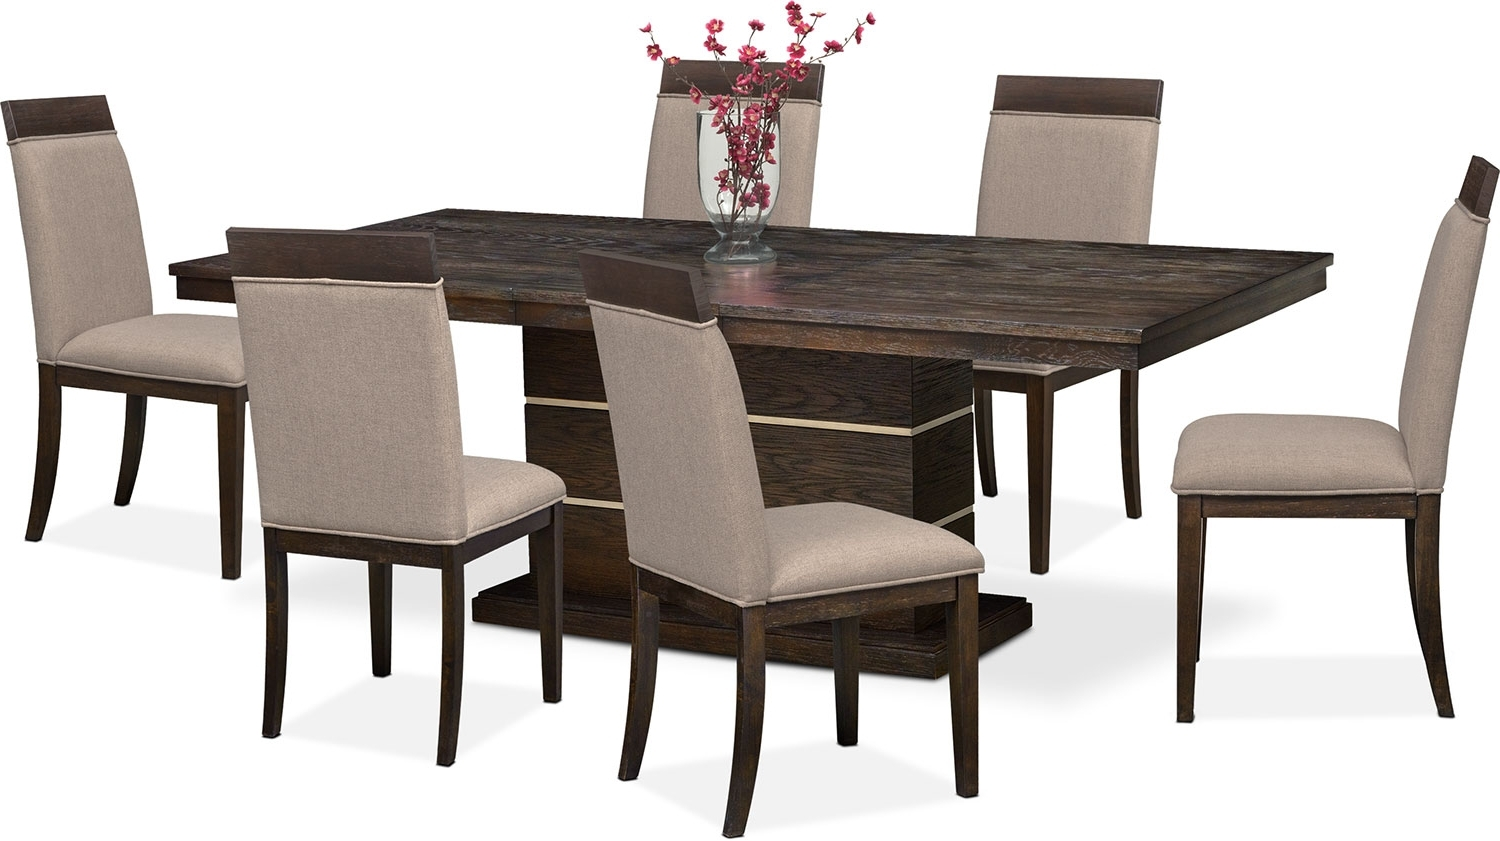 Gavin 6 Piece Dining Sets With Clint Side Chairs With Regard To Famous Gavin Pedestal Table And 6 Side Chairs – Brownstone (Gallery 4 of 25)